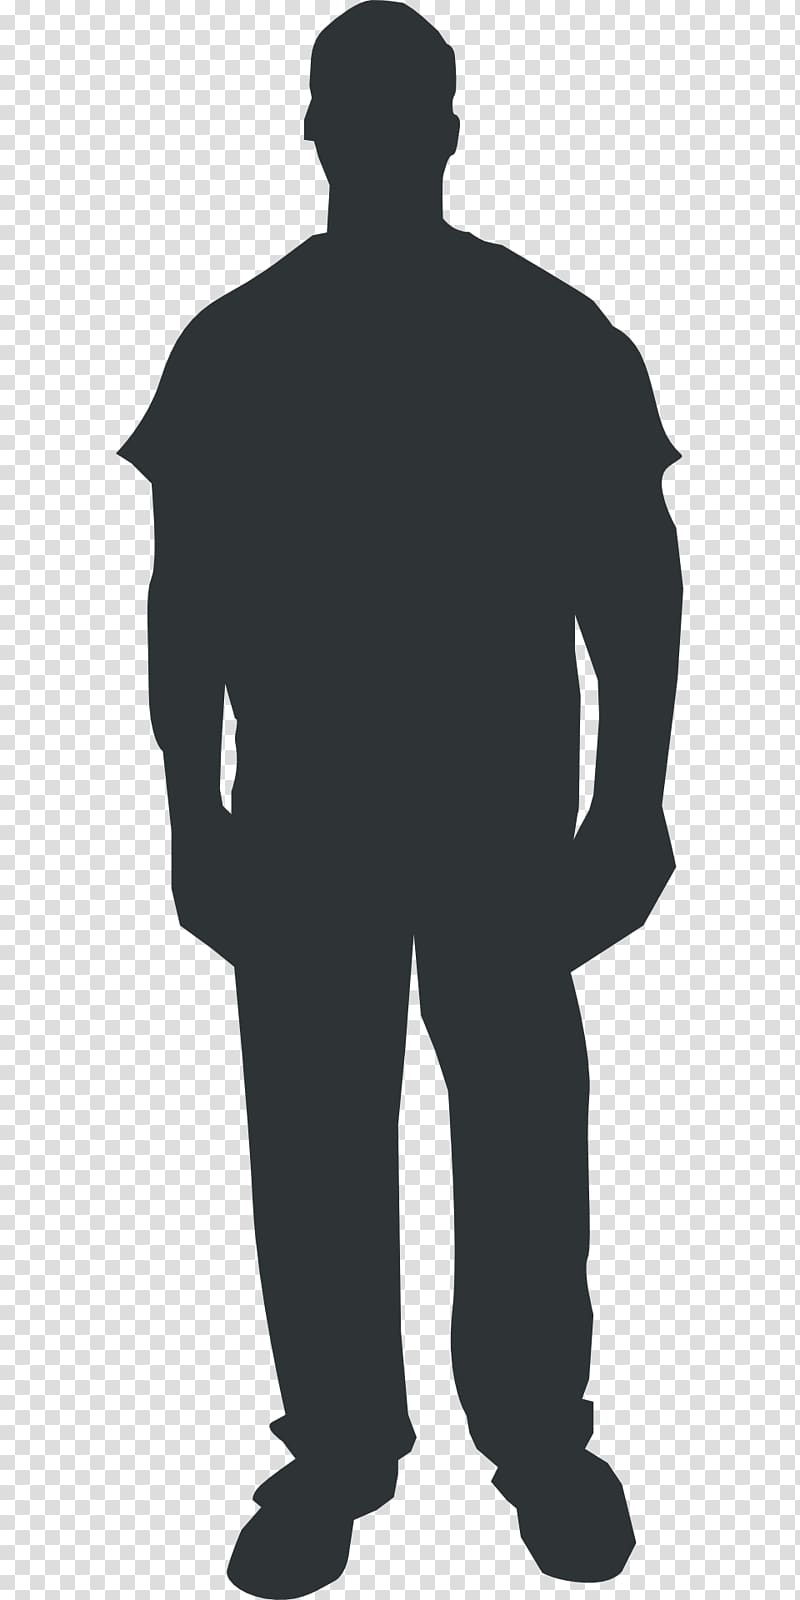 Homo sapiens Person , silhouette man transparent background.